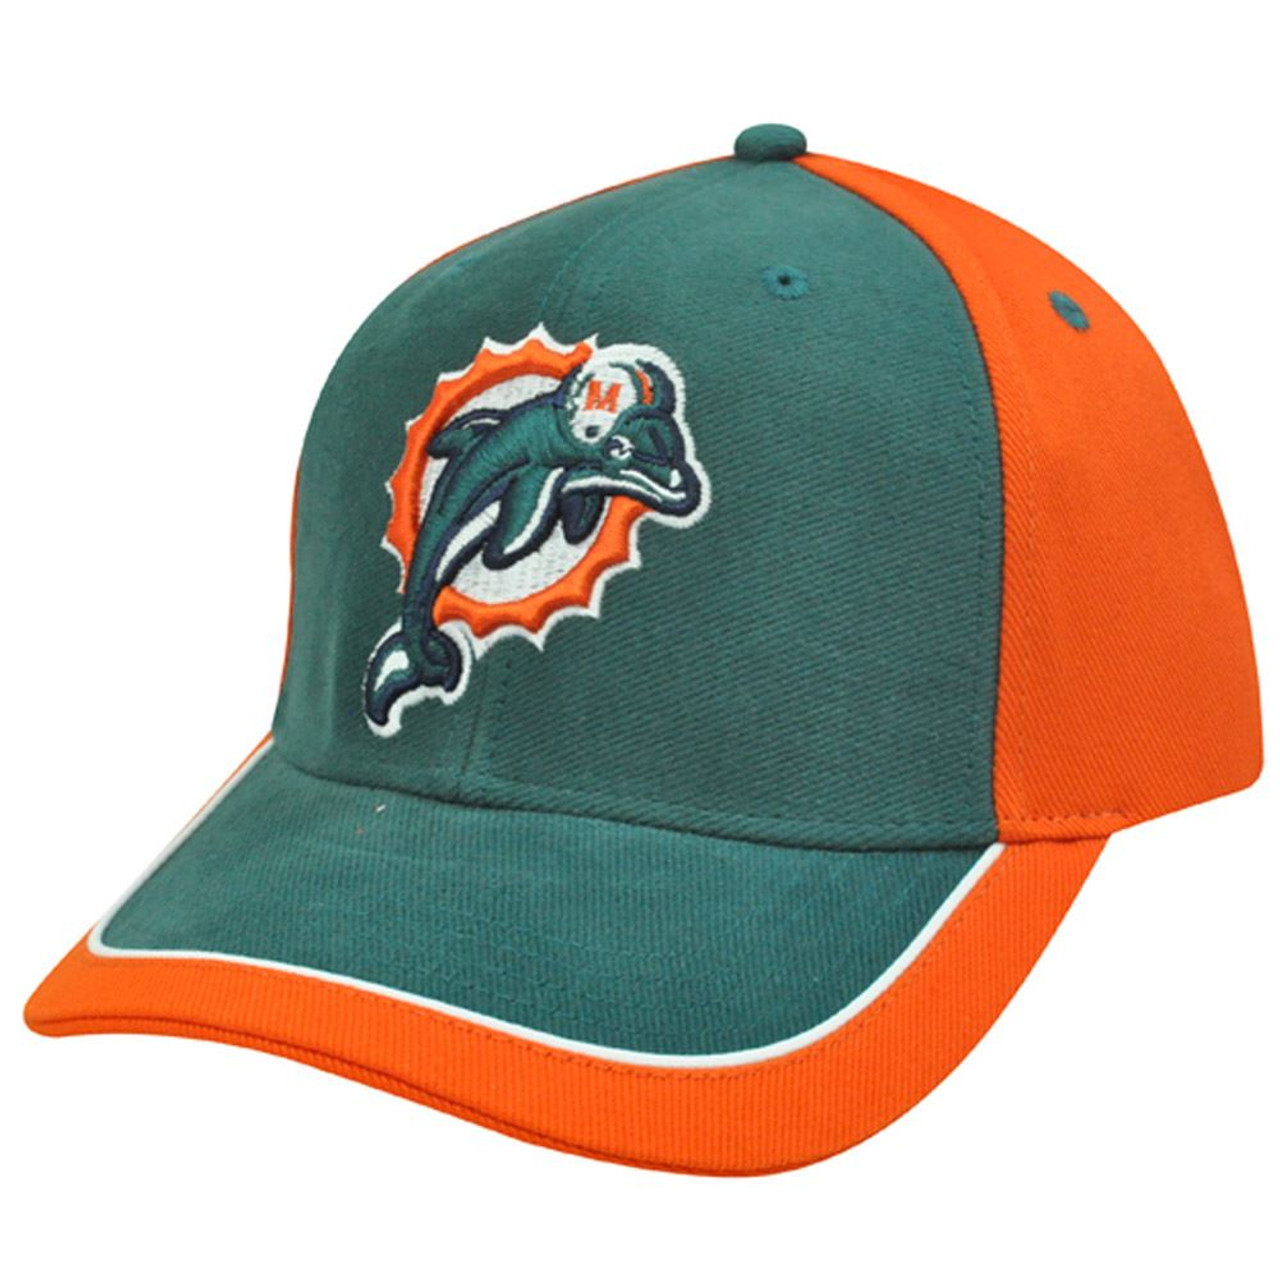 NFL Miami Dolphins Aqua Orange White Hat Cap Constructed Licensed Cotton  Velcro - Sinbad Sports Store 8177d164e